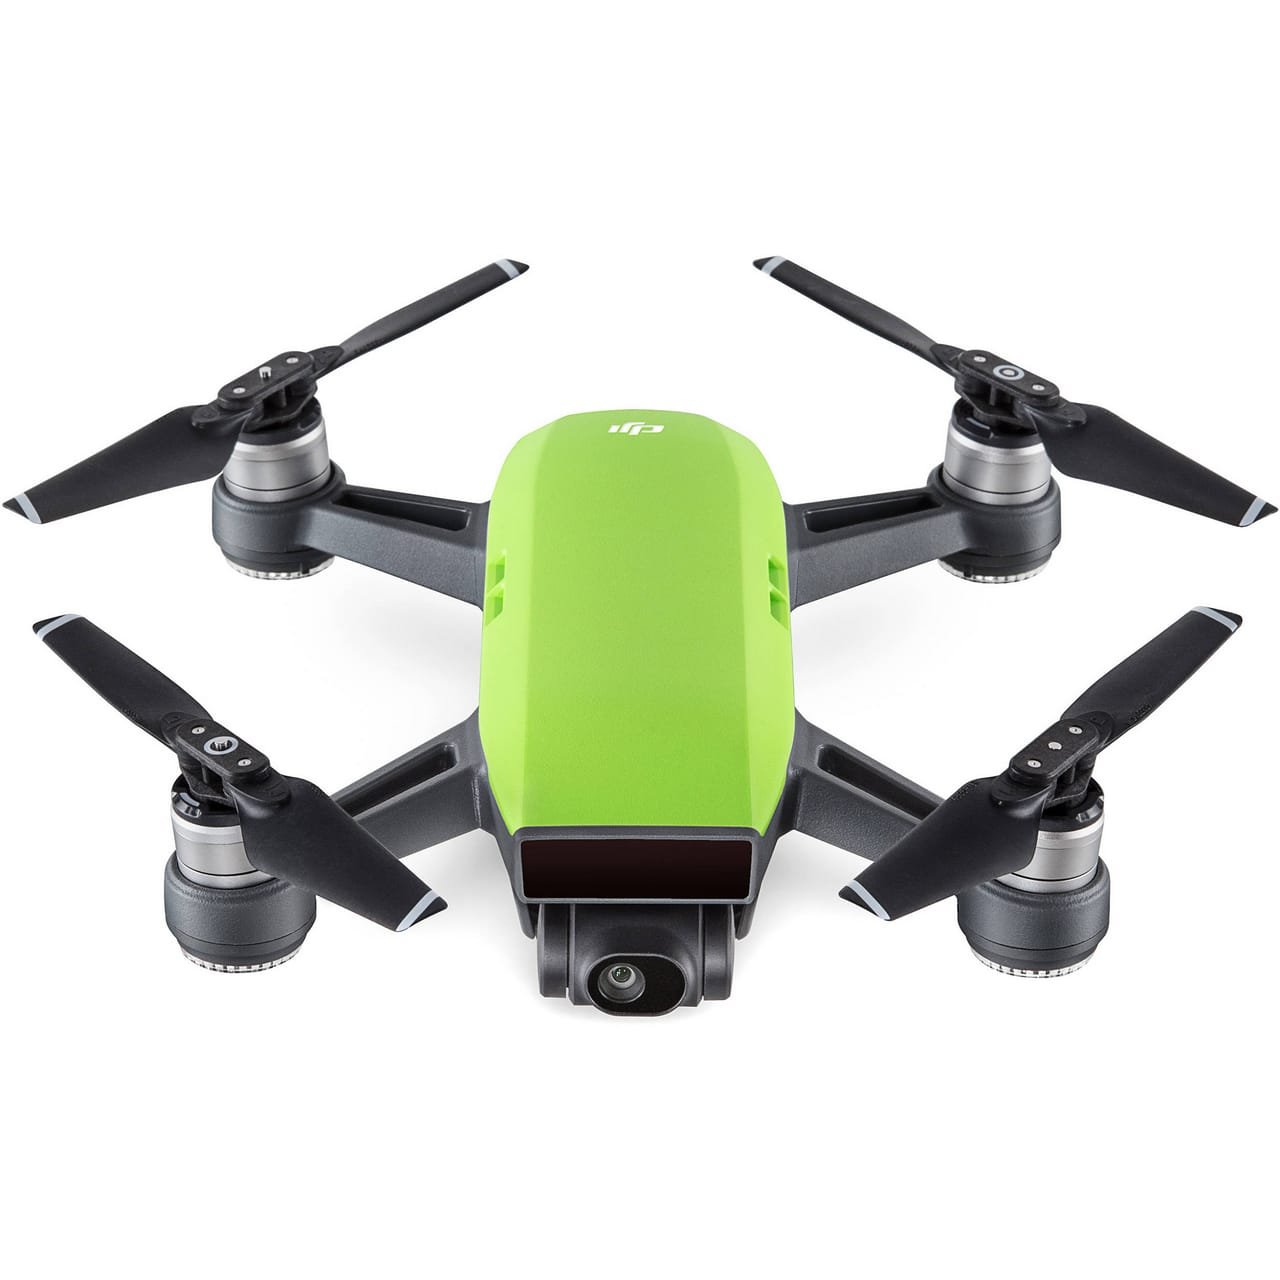 Квадрокоптер (зеленый) DJI SPARK Fly More Combo (EU) Meadow Green, DJI квадрокоптер dji mavic air fly more combo eu arctic white